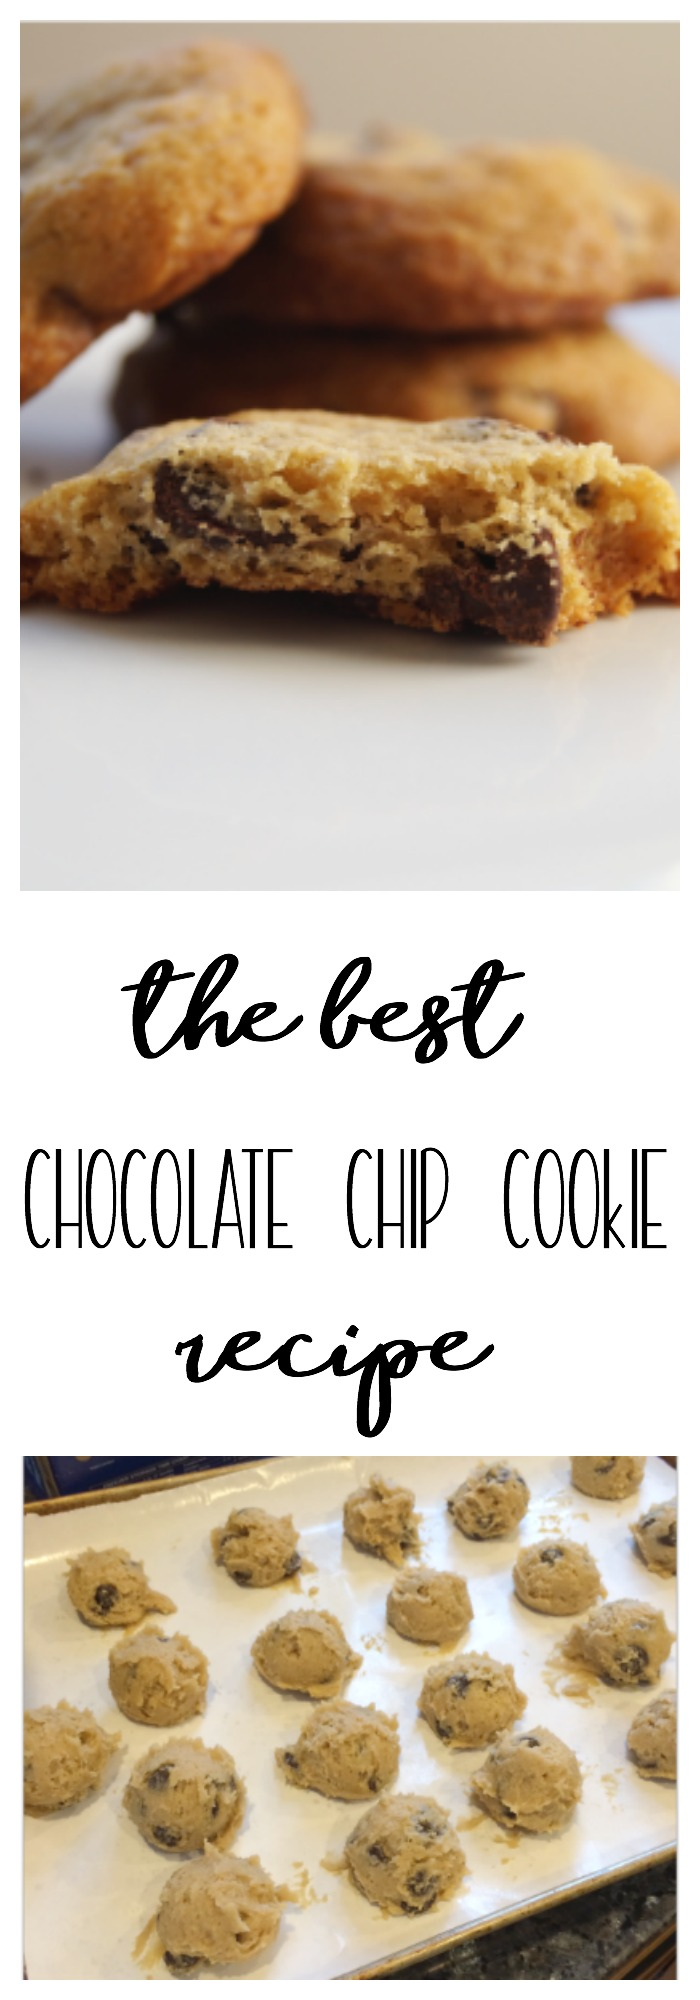 This is the best chocolate chip cookie recipe you will ever taste!